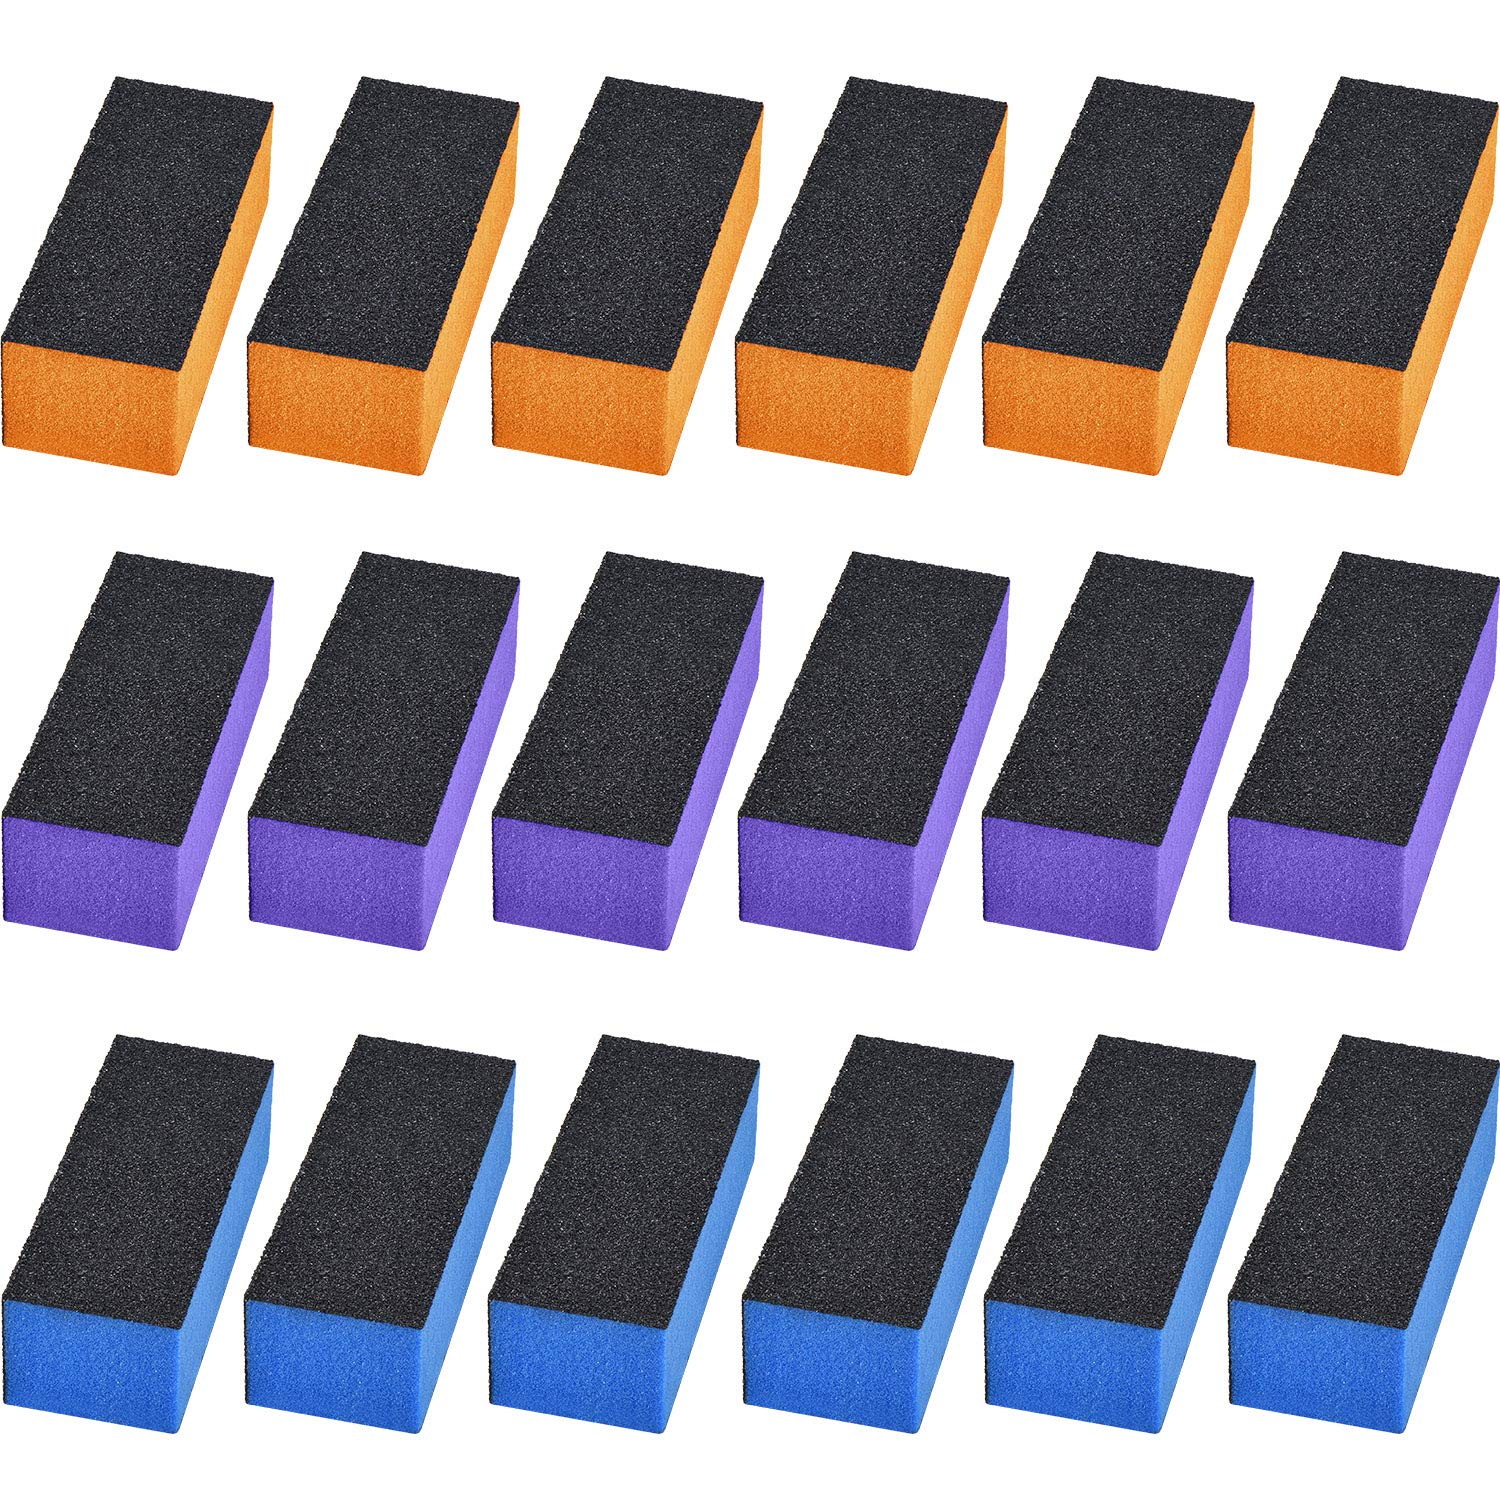 18 Pieces Nail Buffer Block Sanding Buffing Block Nail Files Buffer for Nail Art Tool by Hicarer